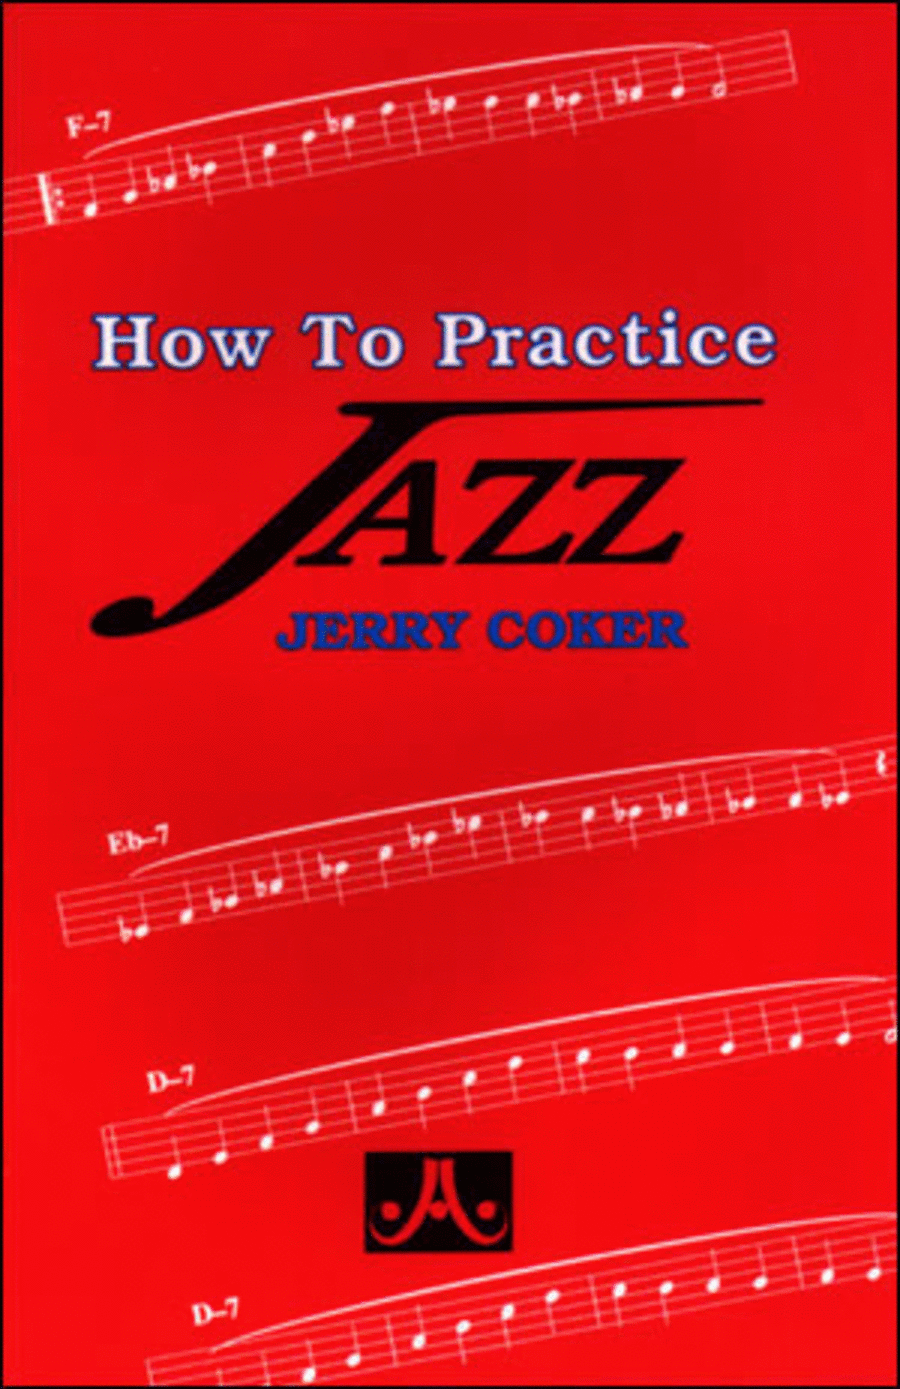 How To Practice Jazz